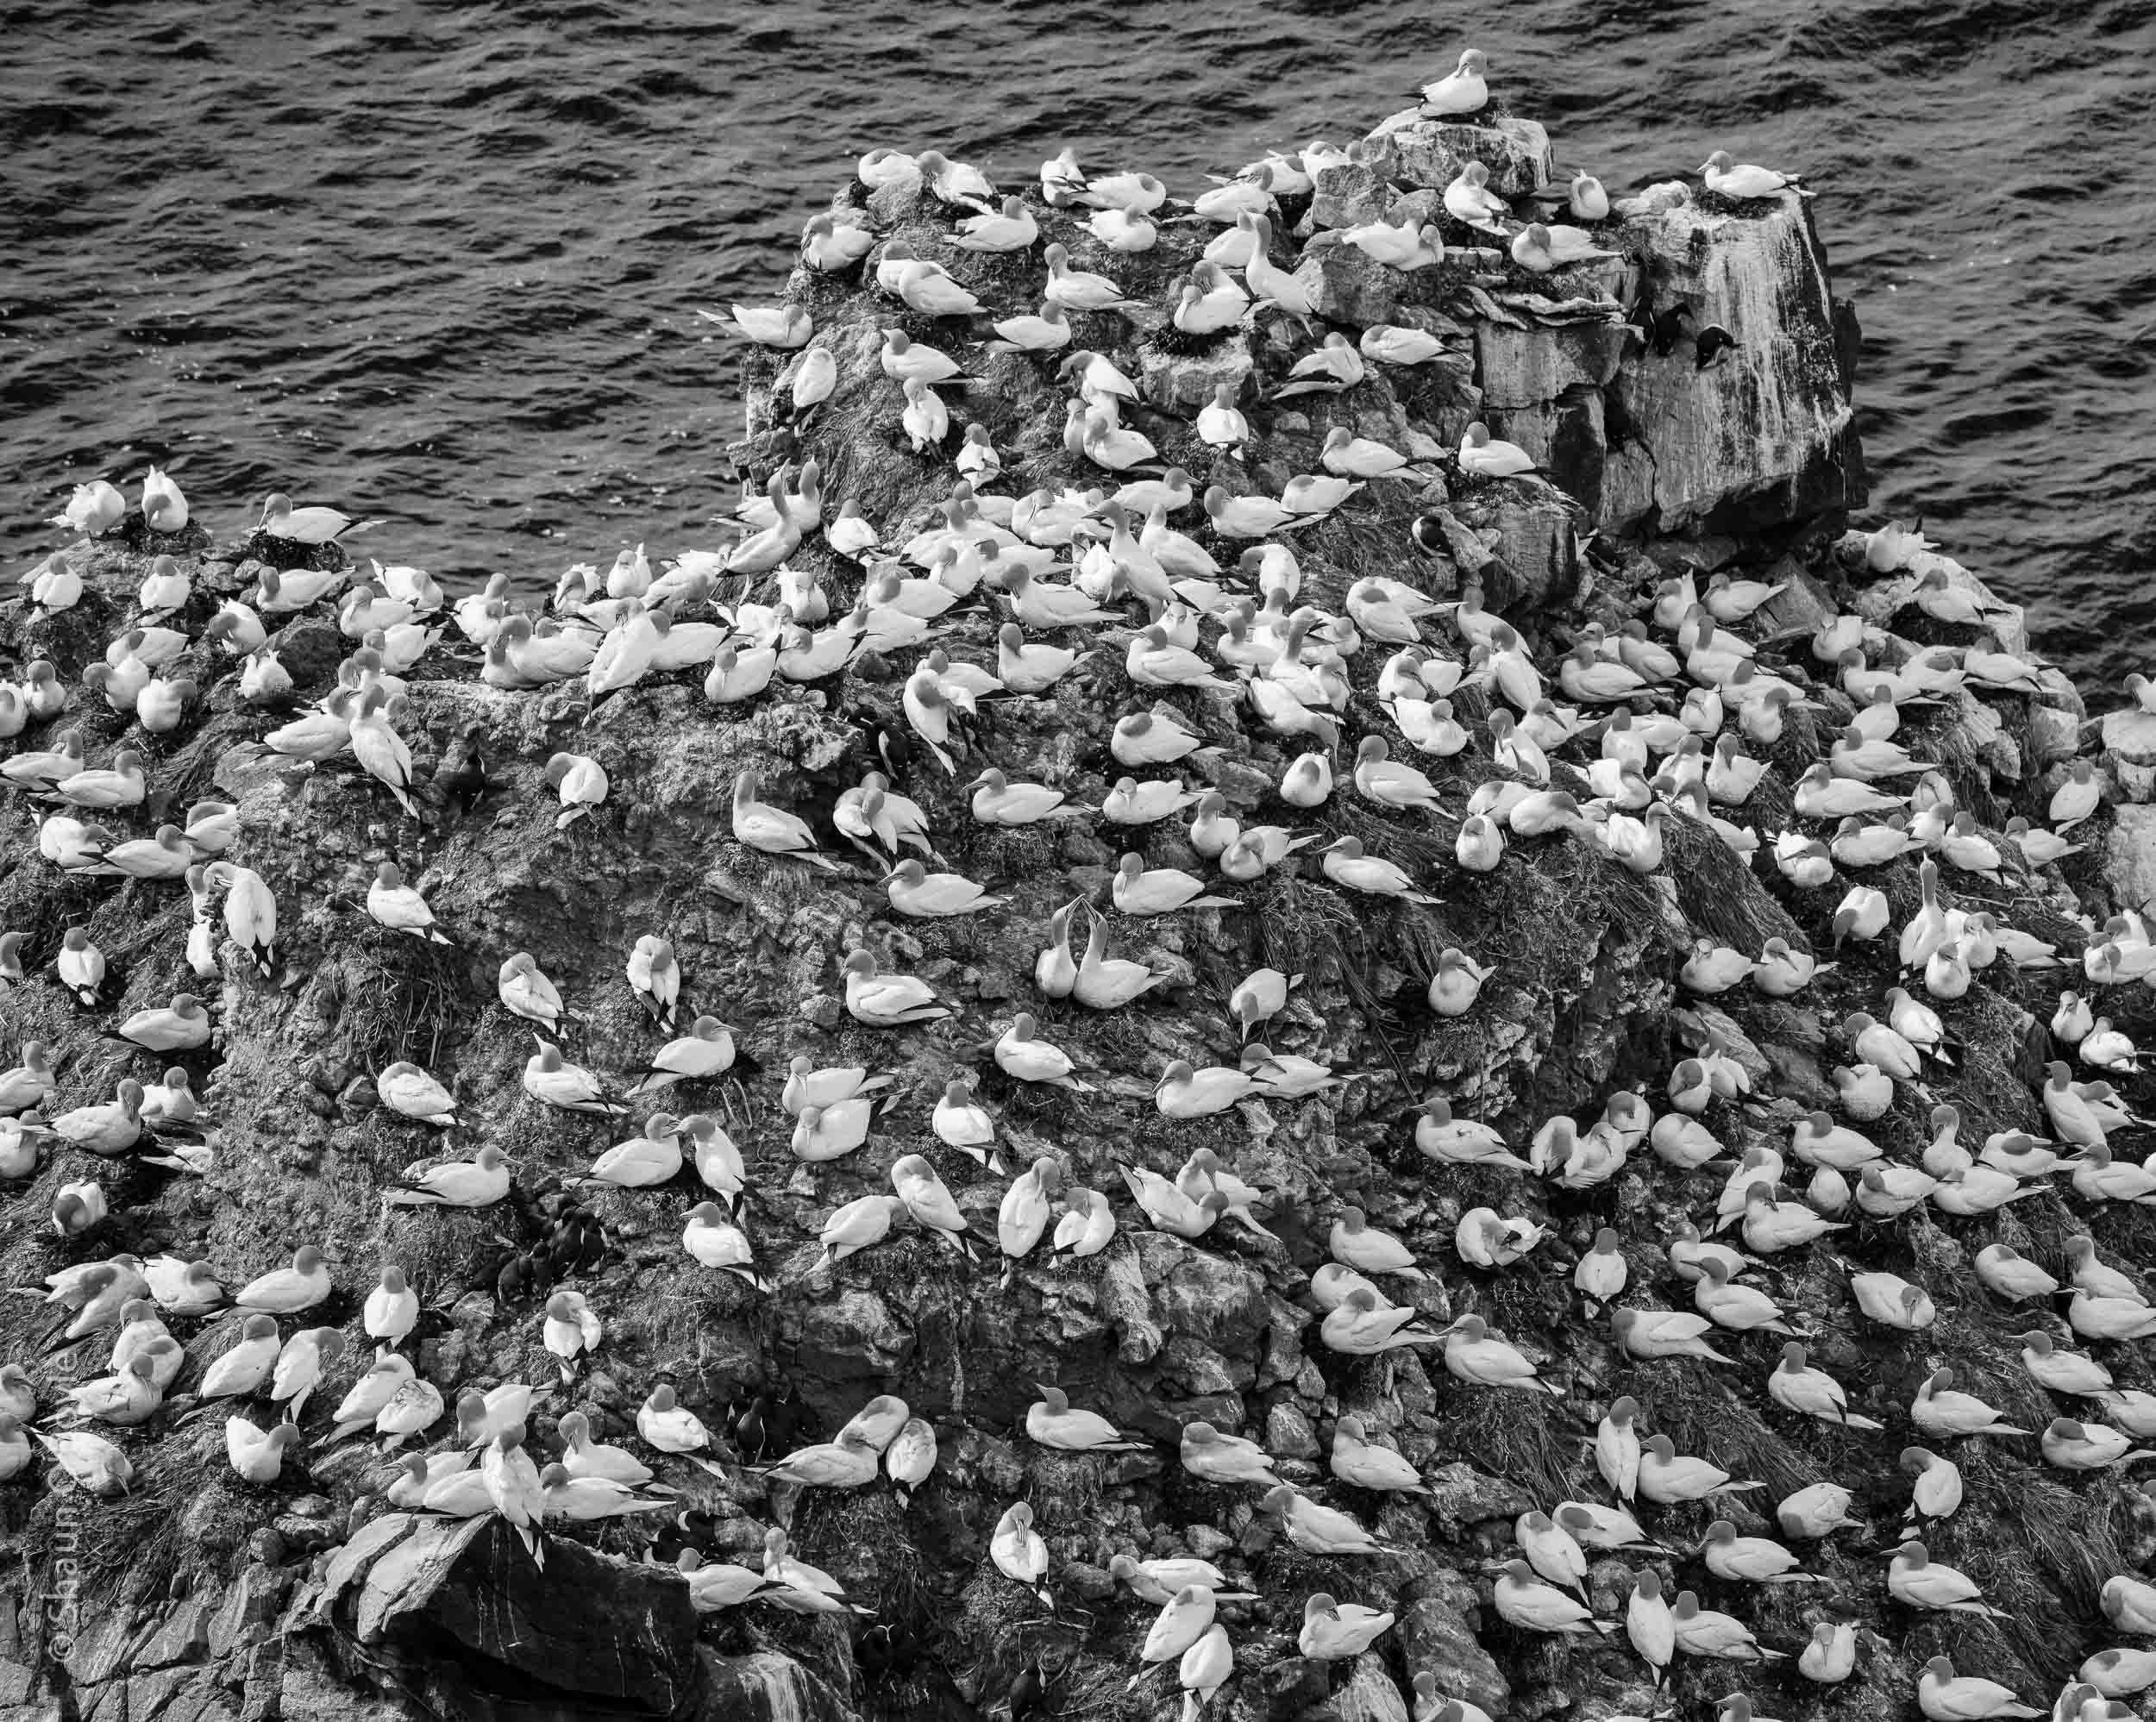 Northern Gannet colony